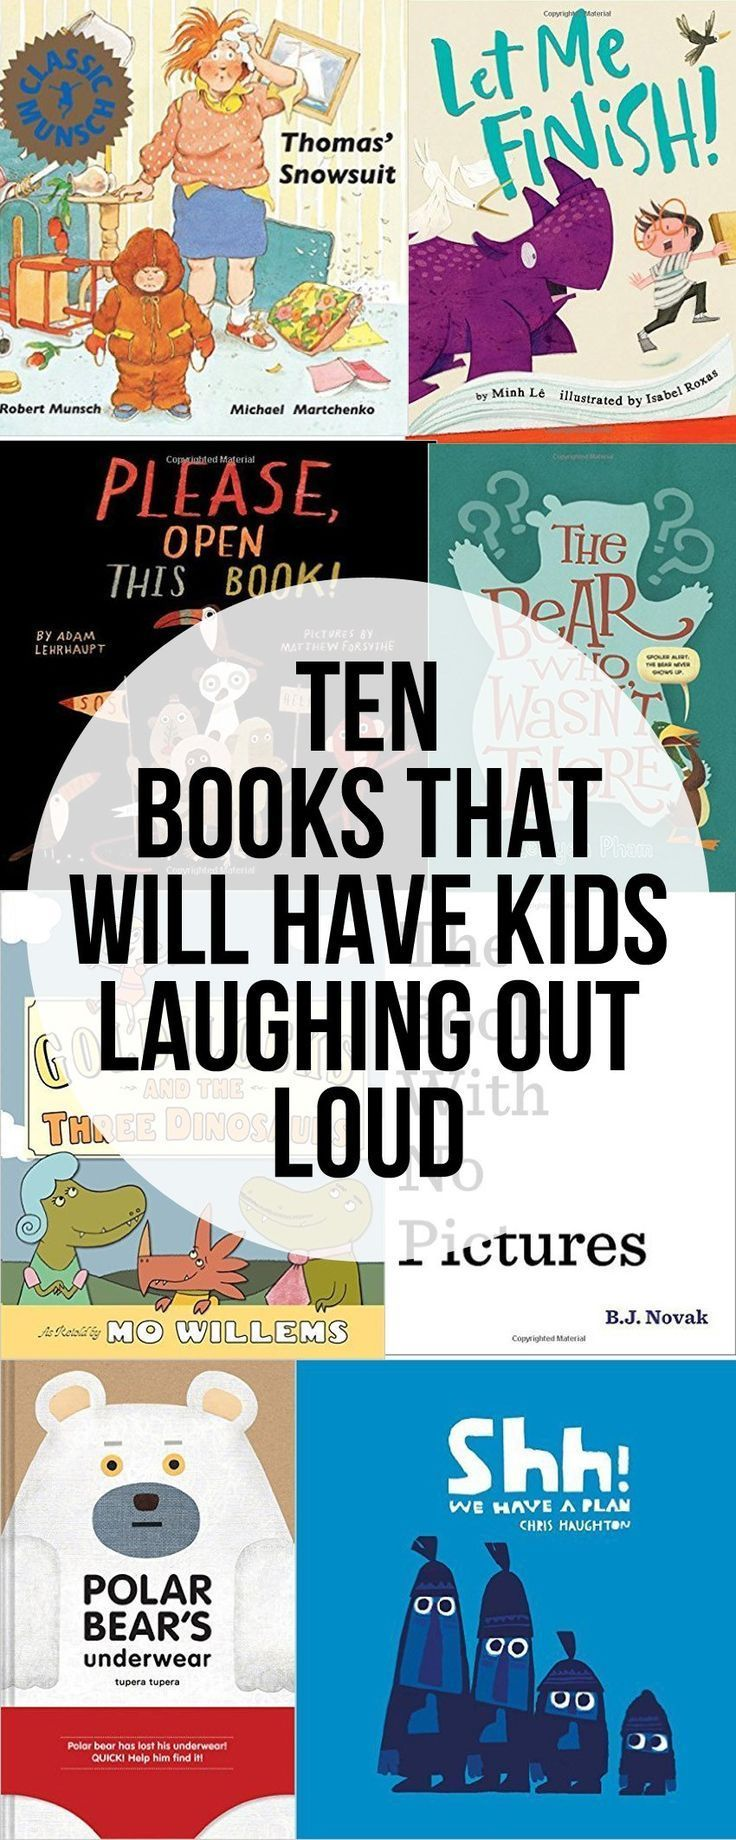 Pictures Books That Will Have Kids Laughing Out Loud. Repinned by SOS Inc. Resources pinterest.com/sostherapy/